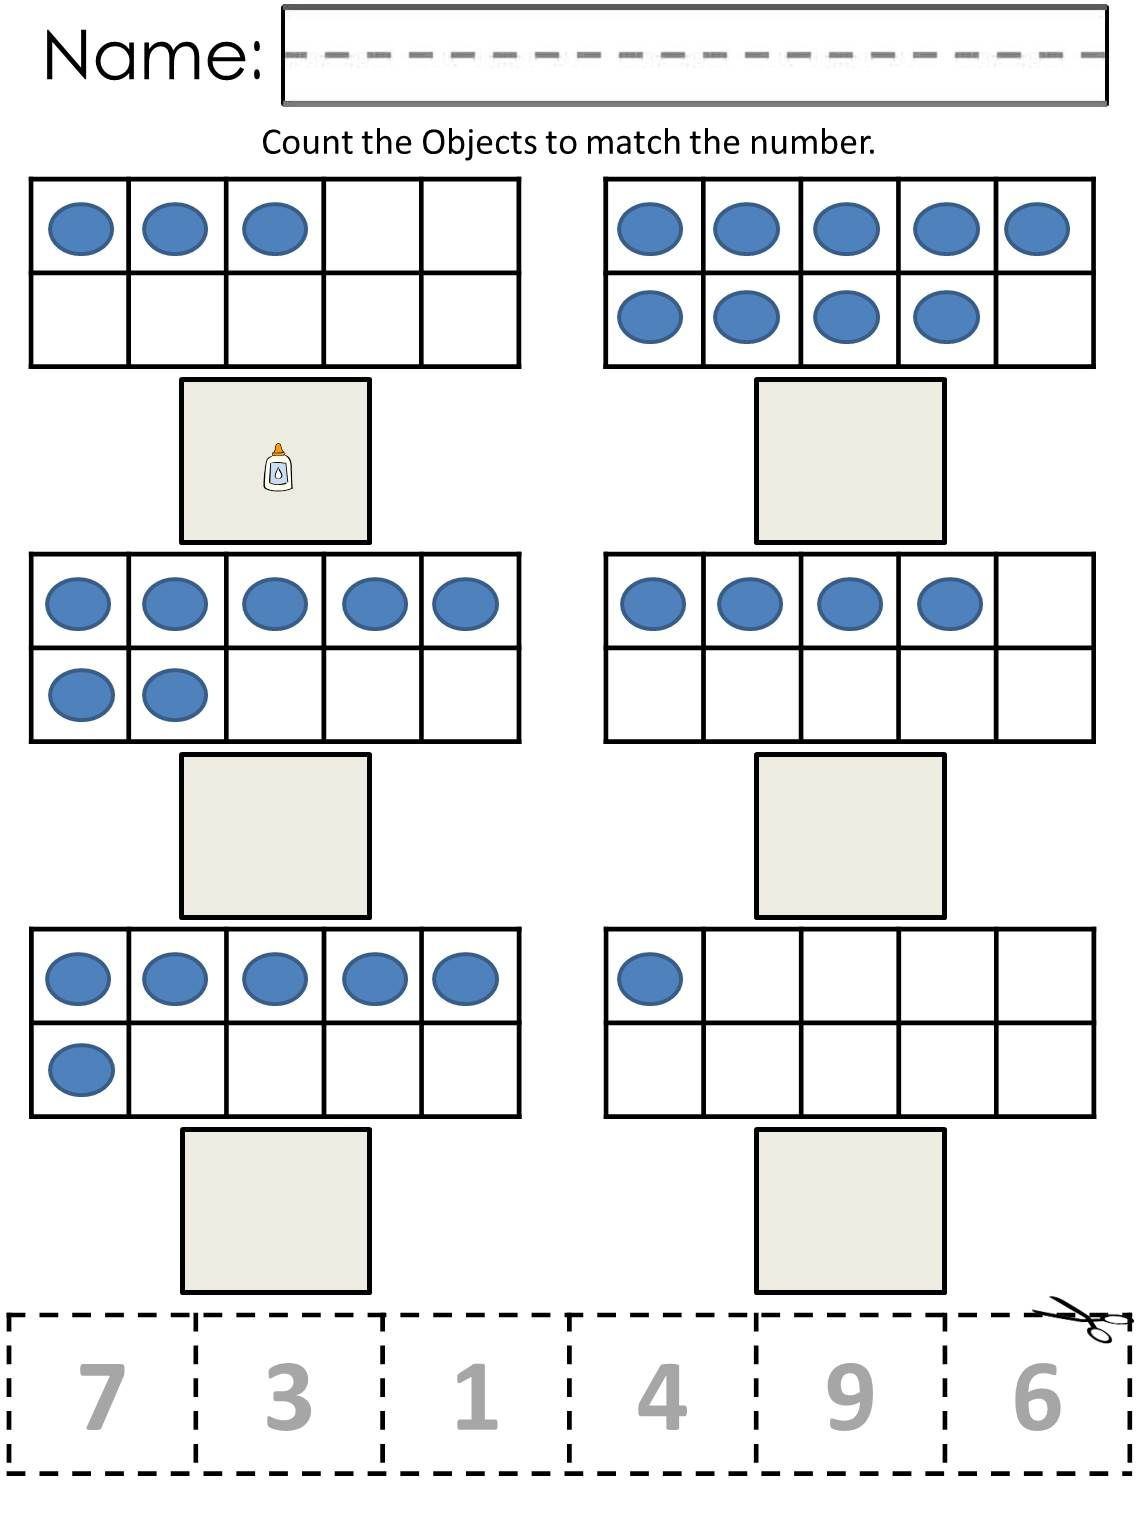 Ten Frame Counting Worksheets Now Available at www.AutismComplete ...